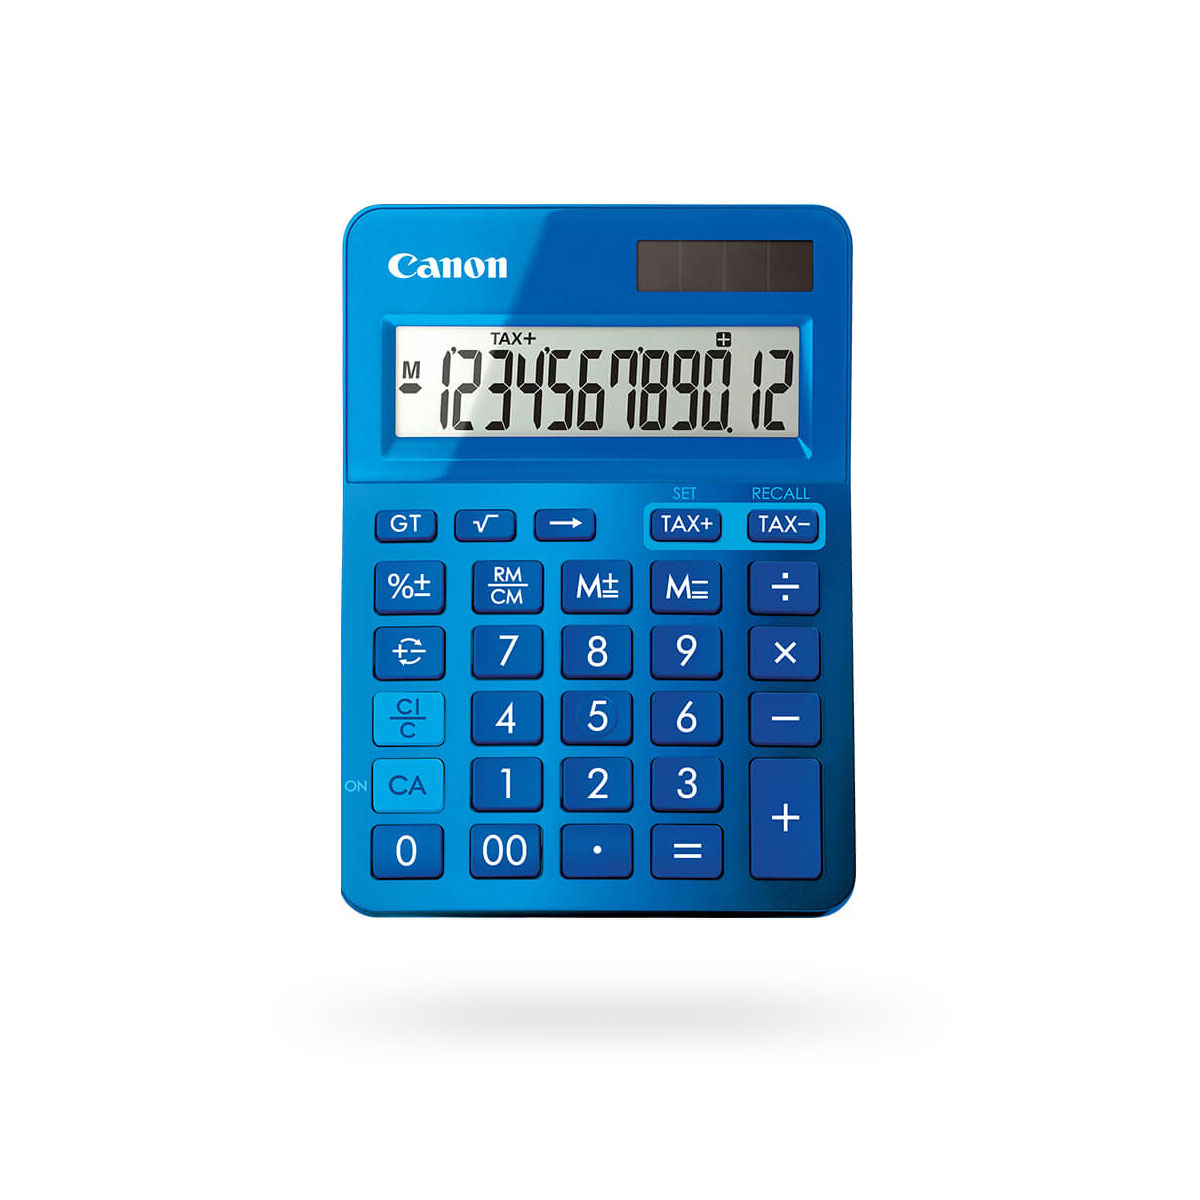 LS-123K Series calculator